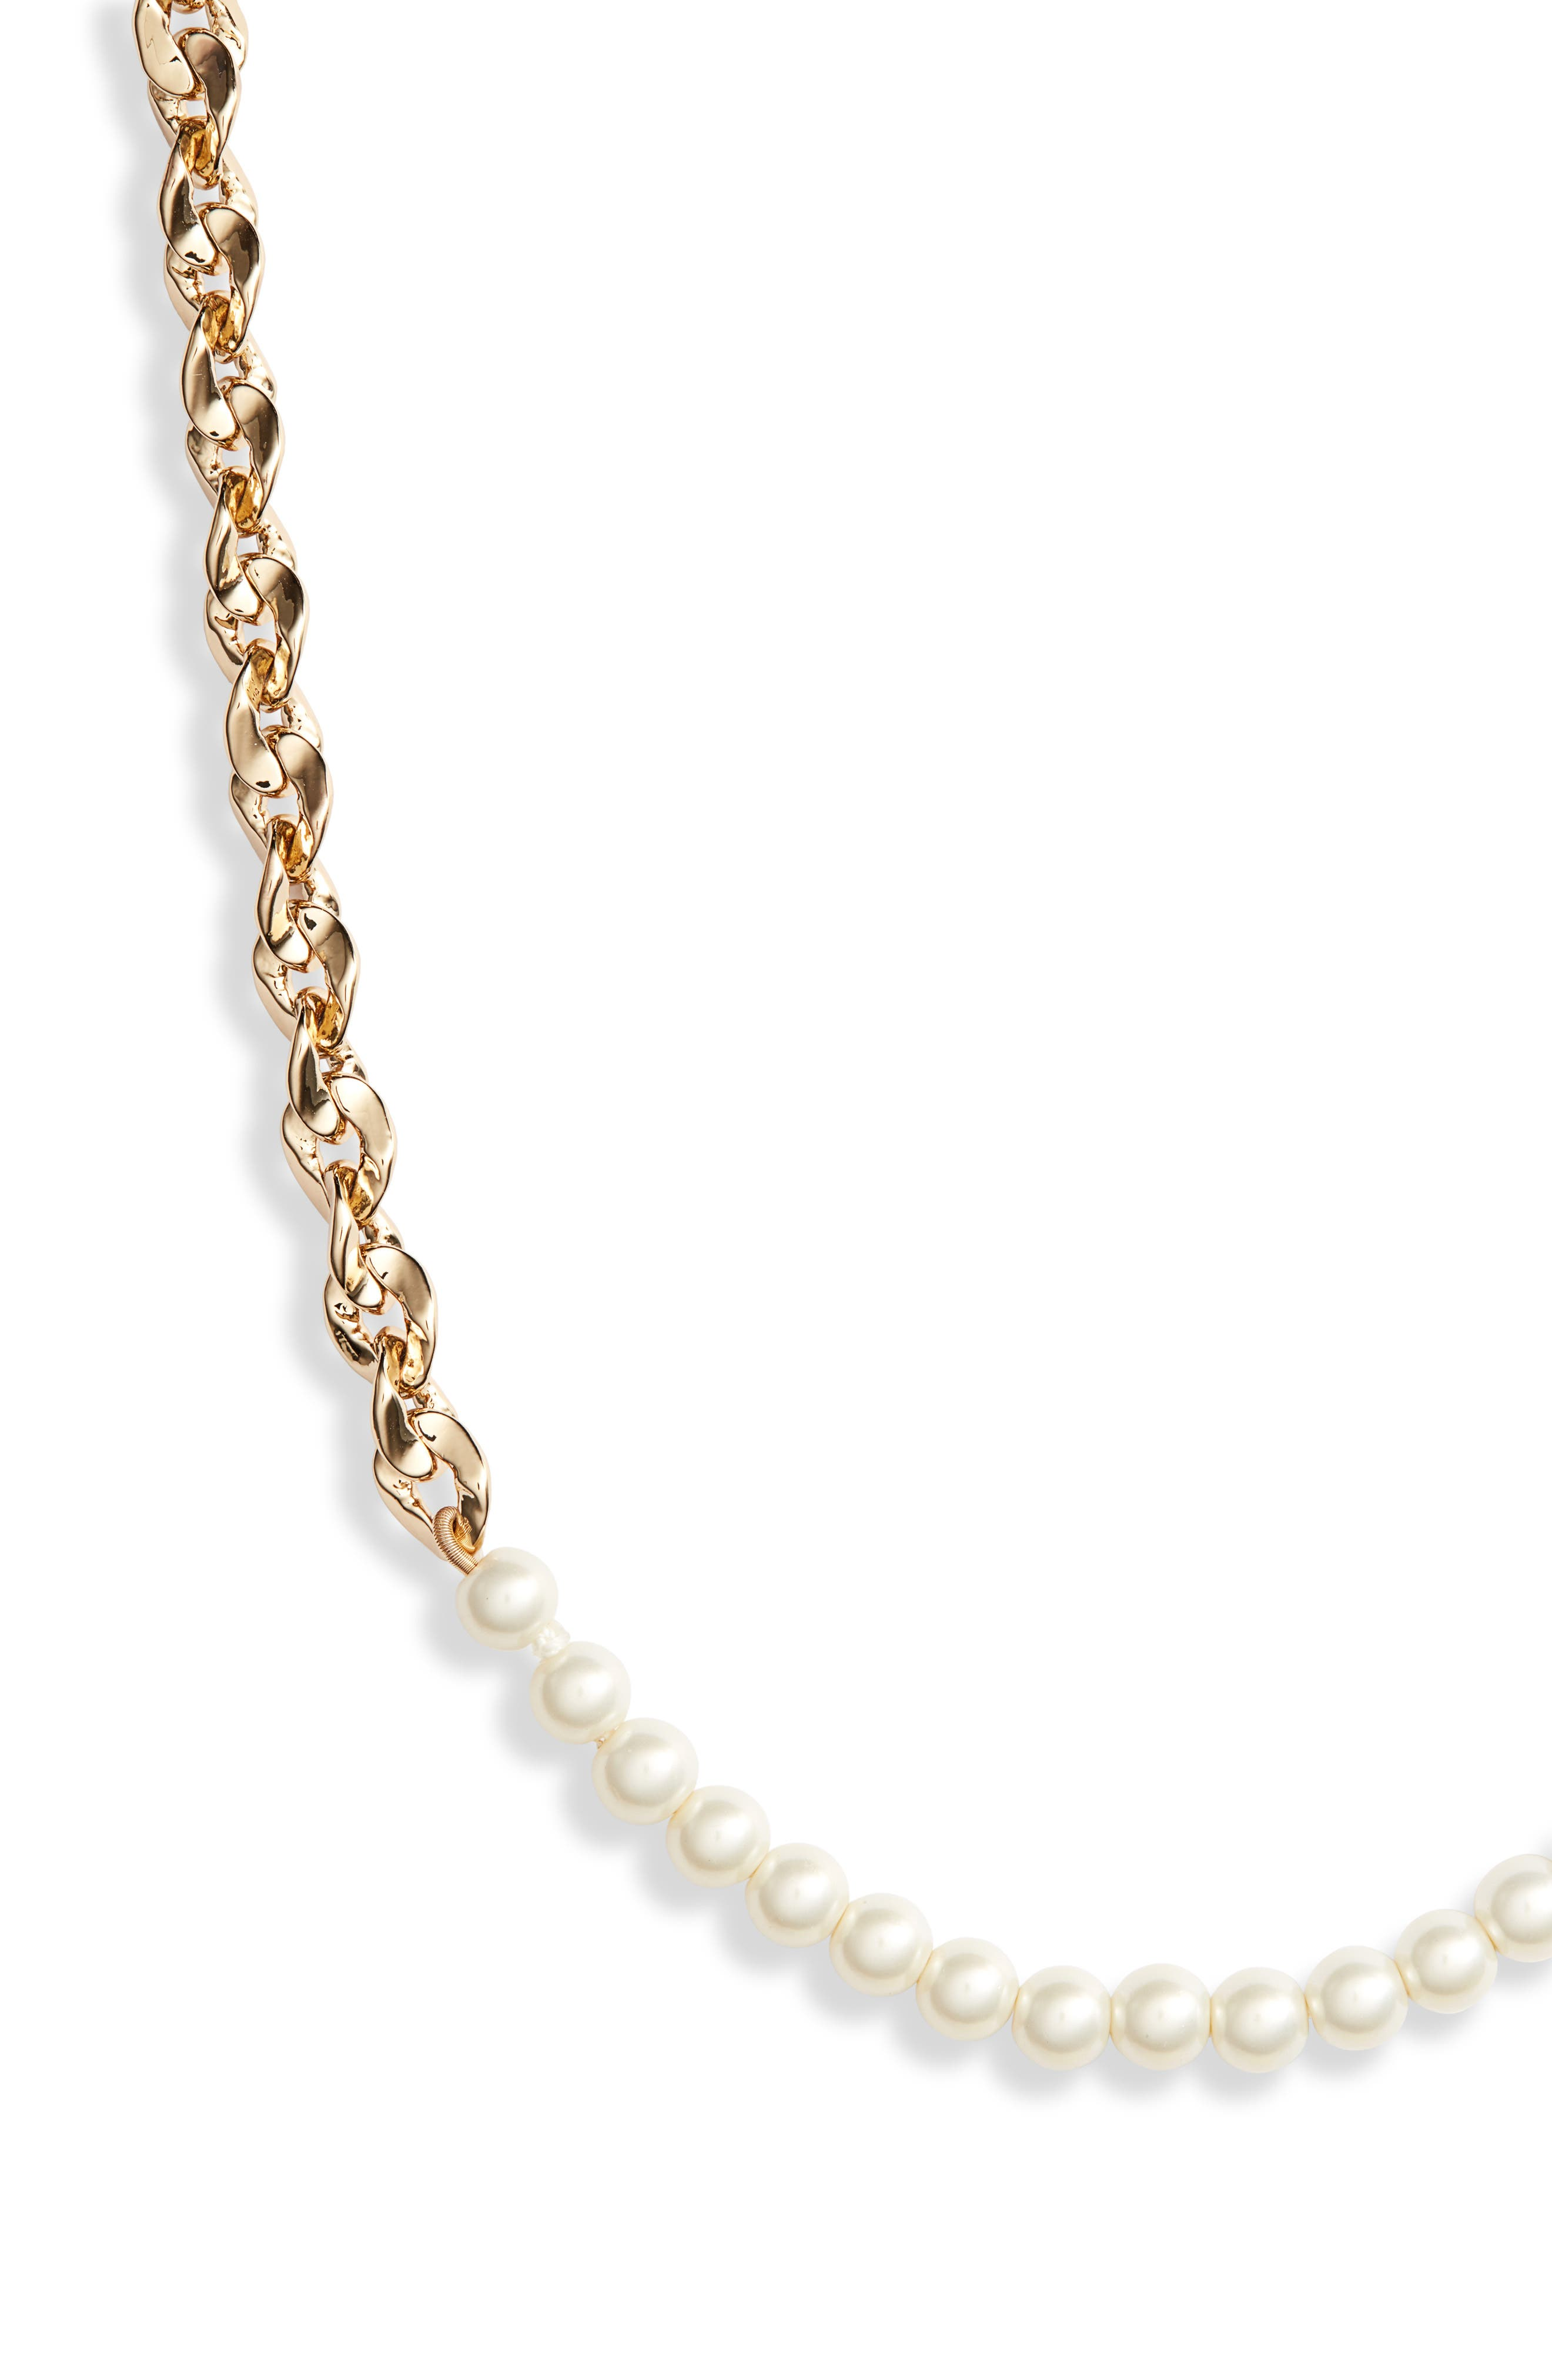 Imitation Pearl & Chain Necklace,                             Alternate thumbnail 2, color,                             GOLD/ PEARL